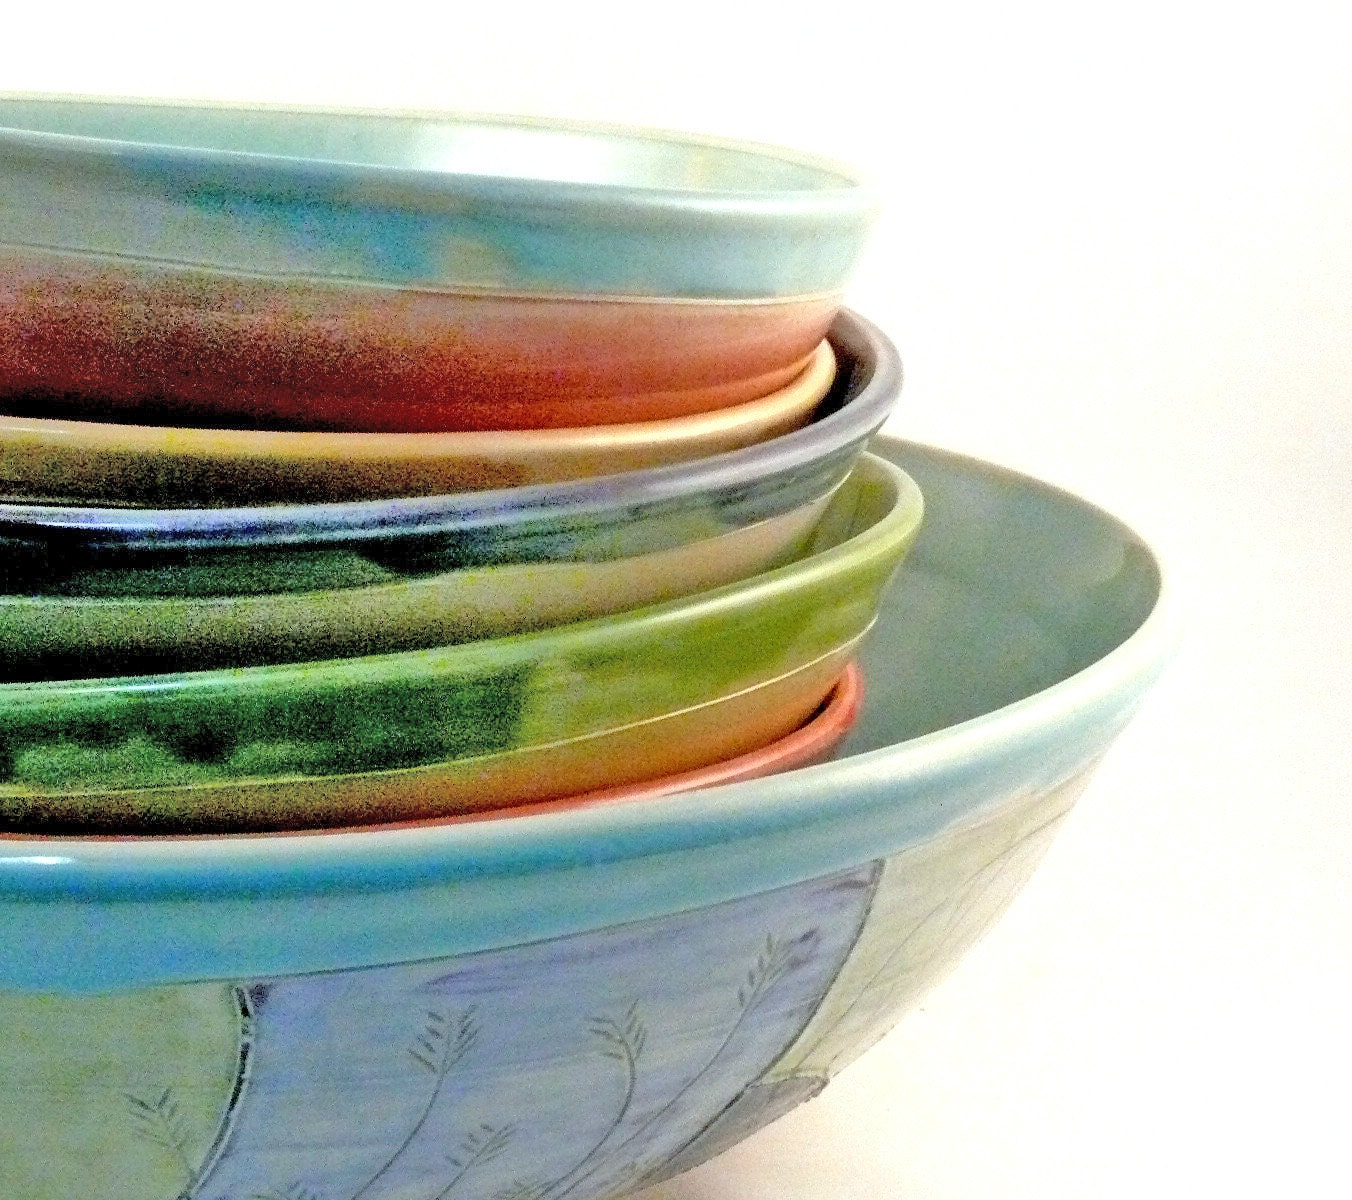 Handmade Art Bowls Pasta Bowl Set with six pasta dishes and one serving bowl IN STOCK - BlueSkyPotteryCO